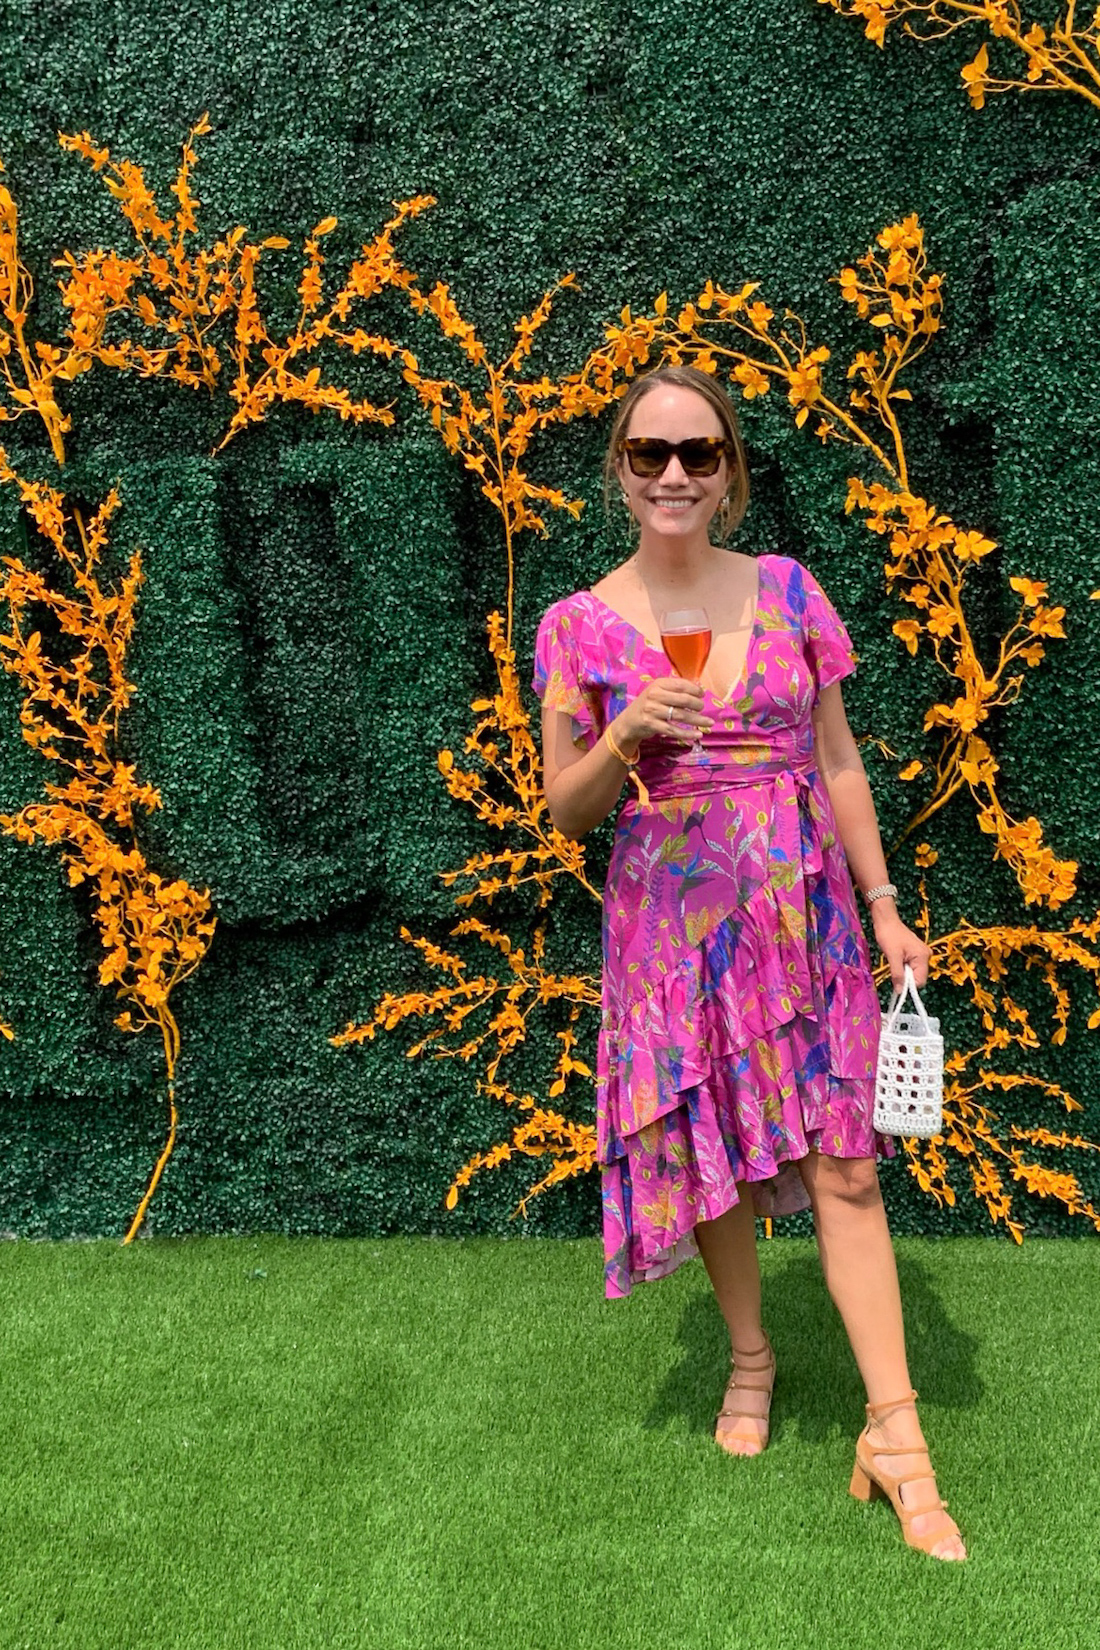 Grace Atwood is at Polo with Veuve Clicquot event